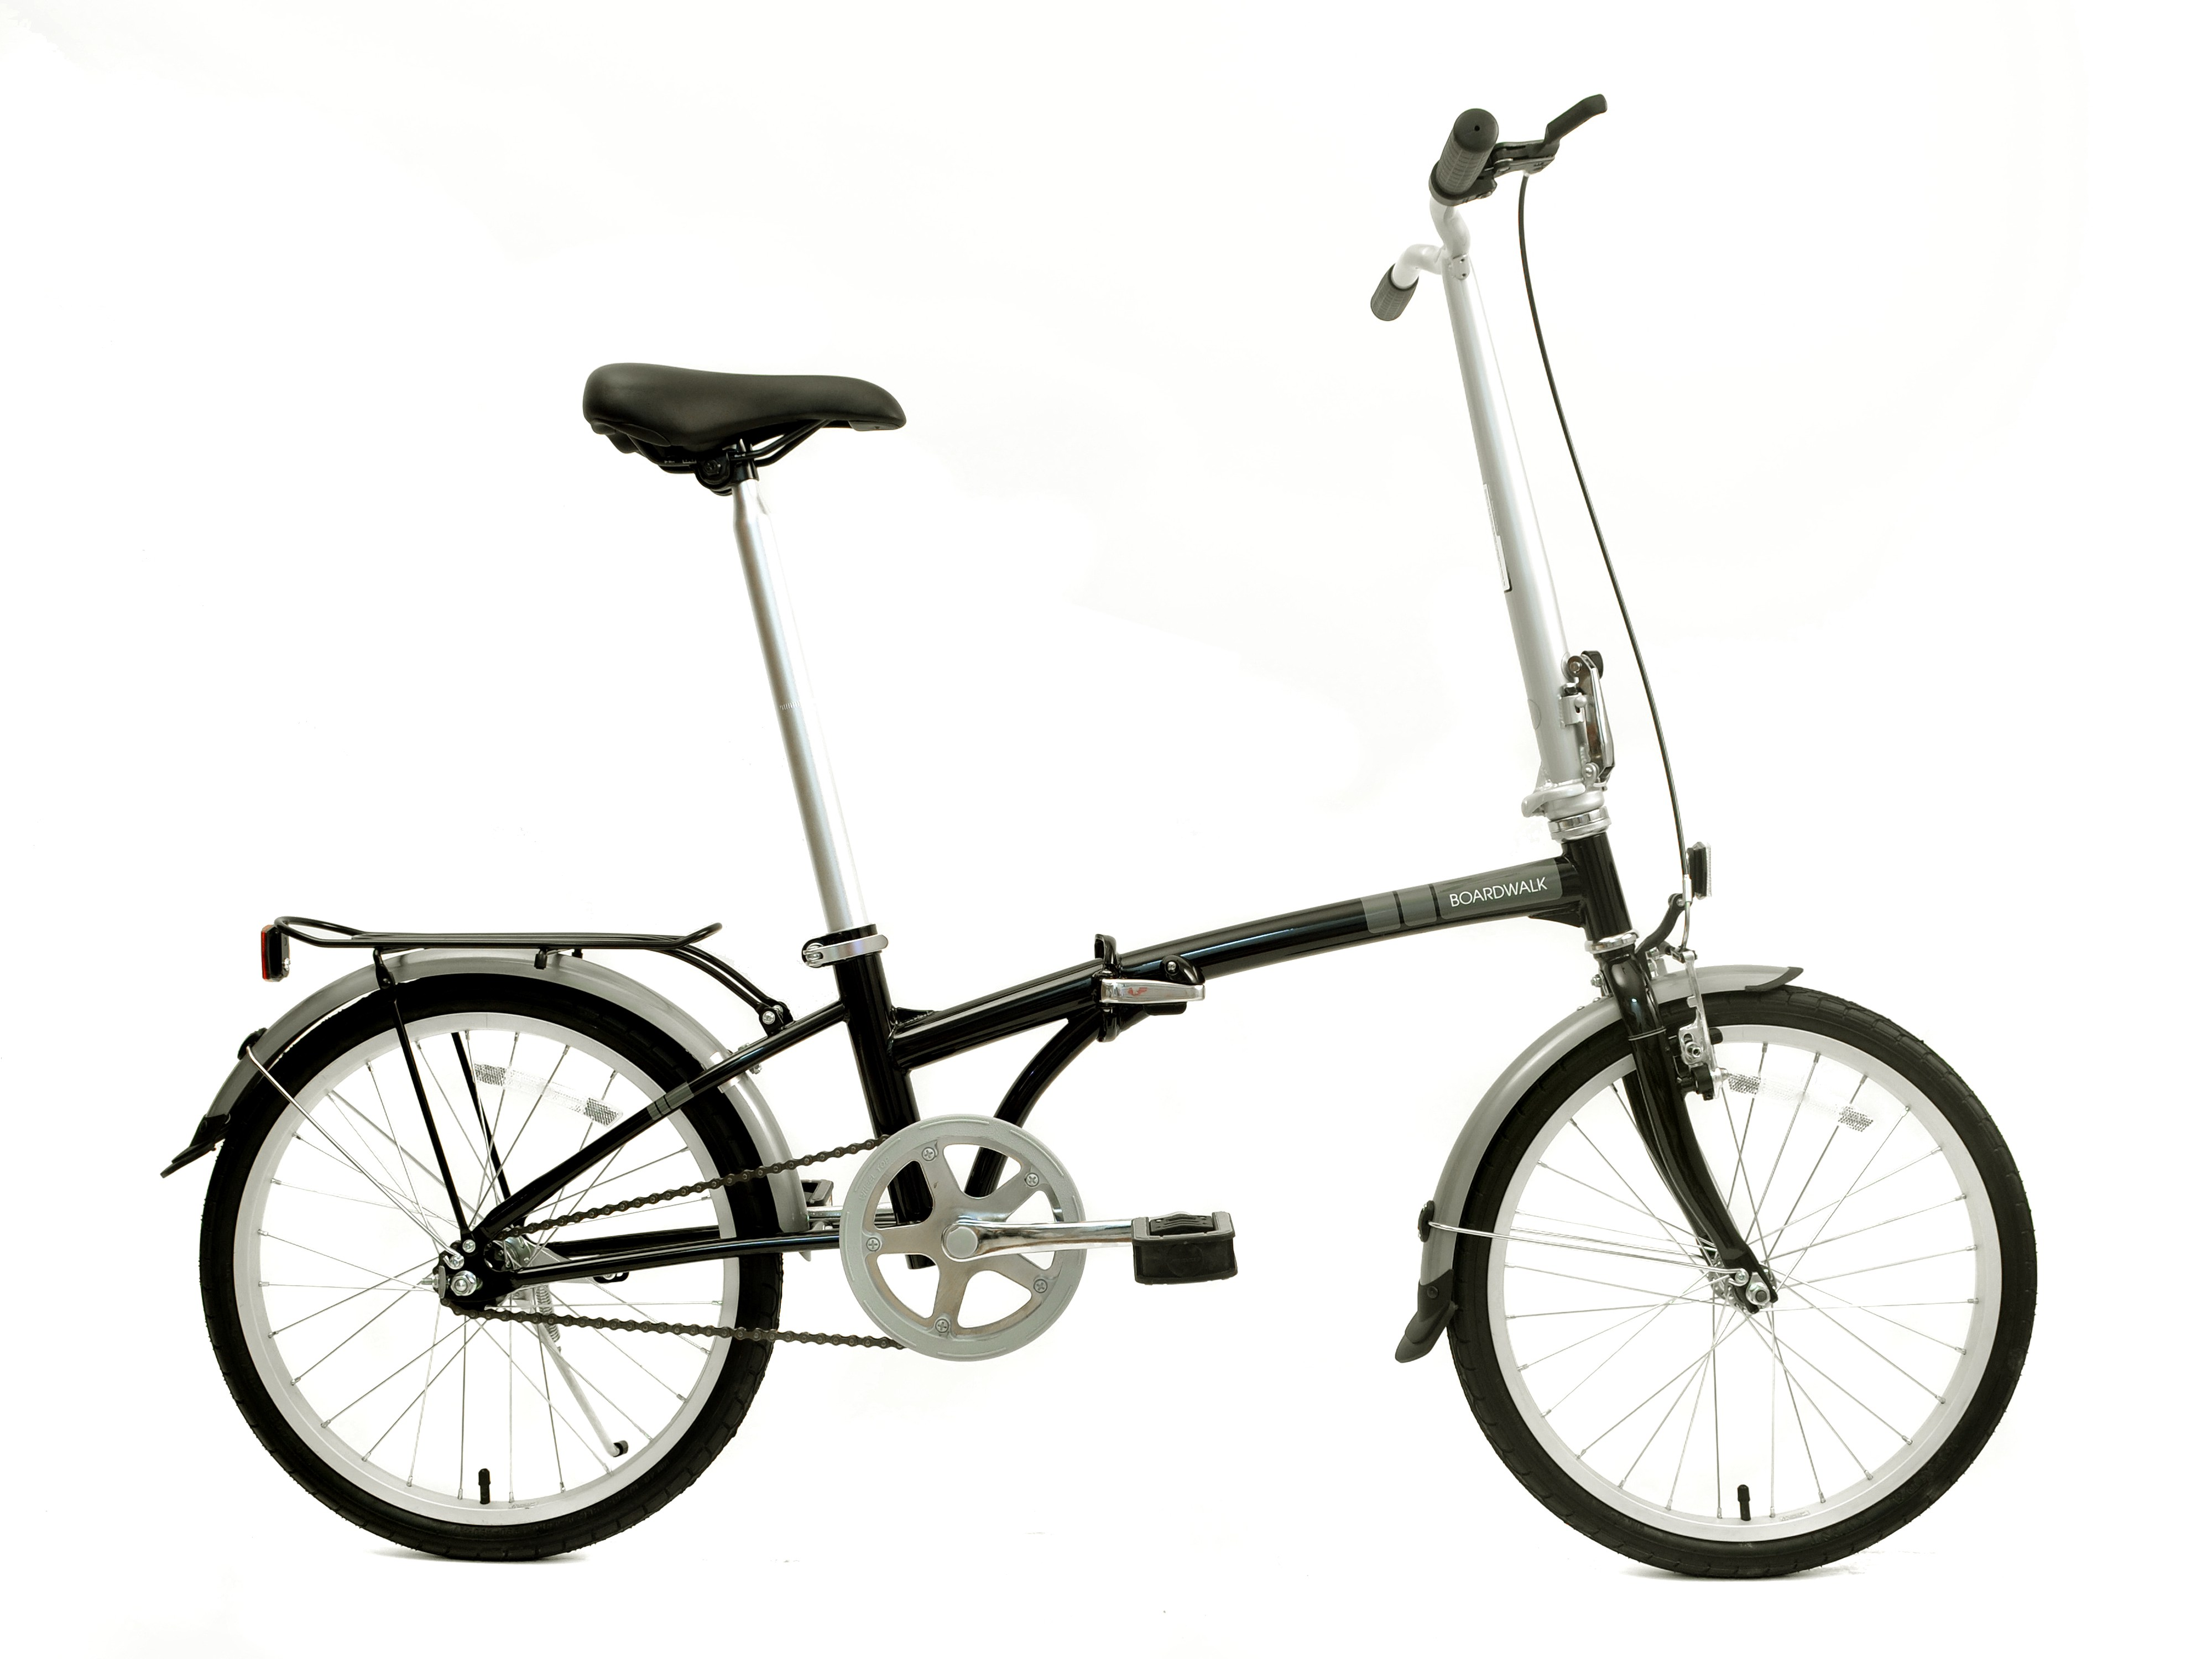 New Models From Folding Bike Manufacturer Dahon